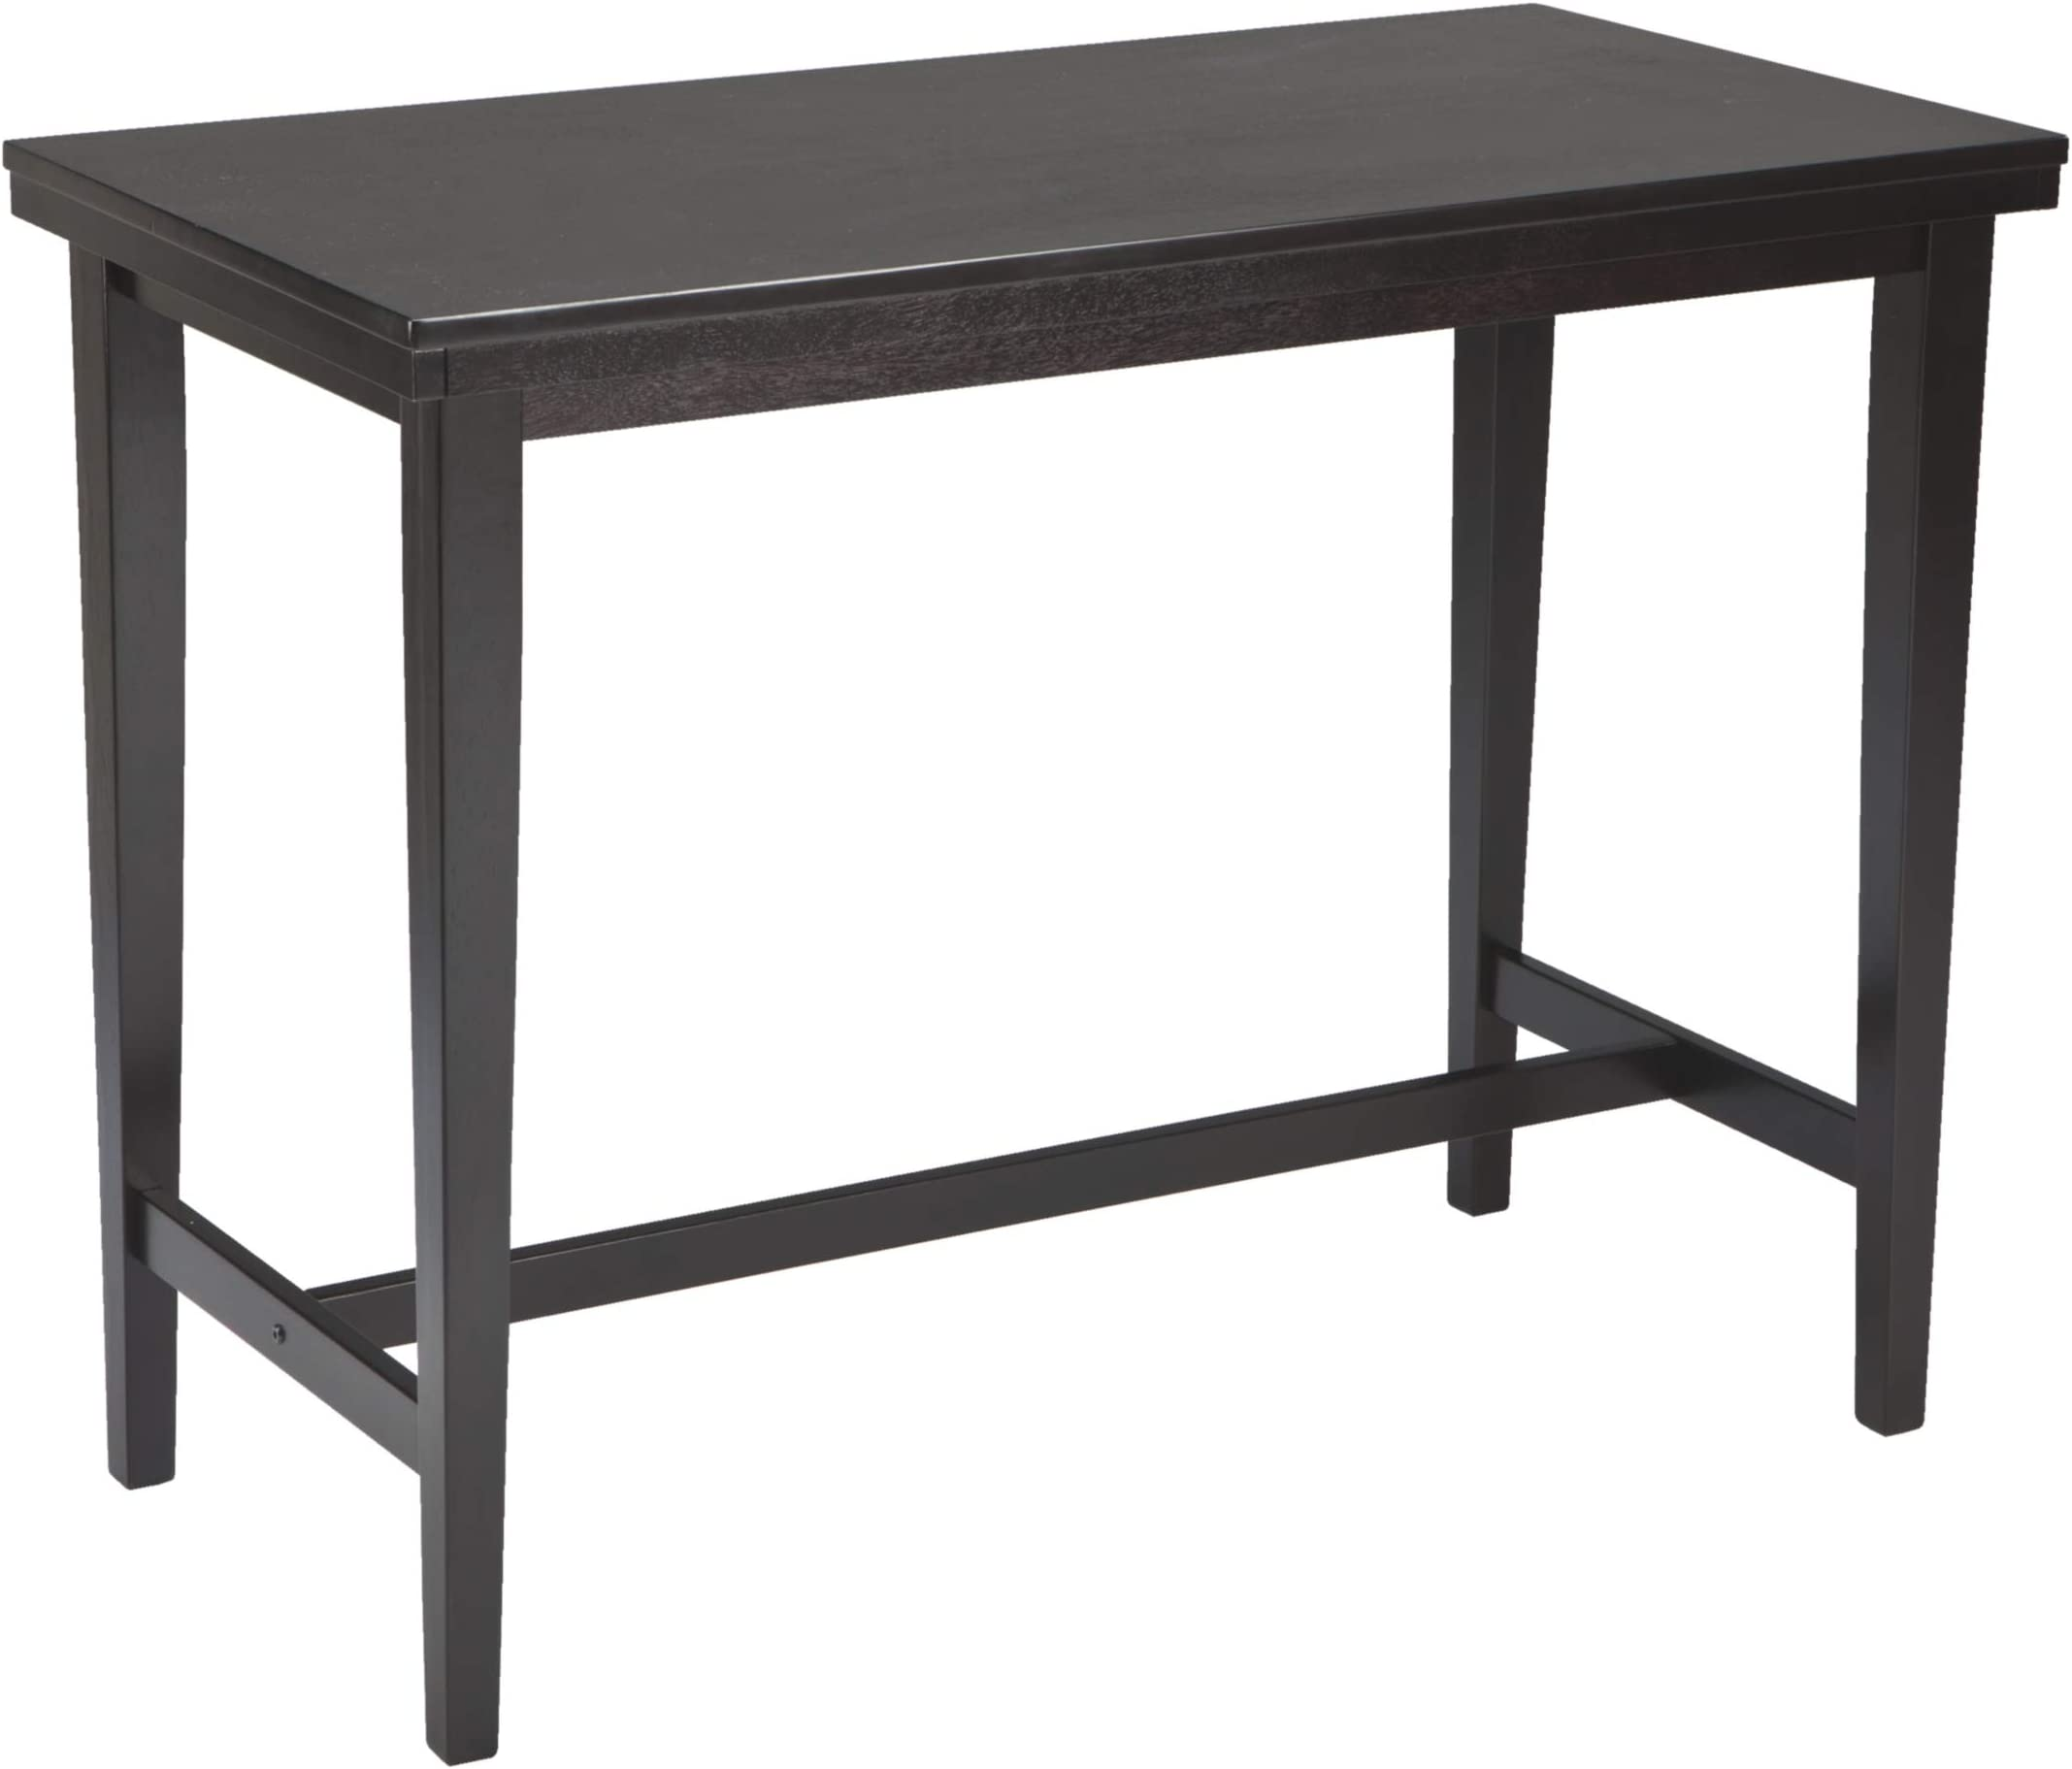 Signature Design by Ashley Kimonte Counter Height Dining Room Table, Dark Brown